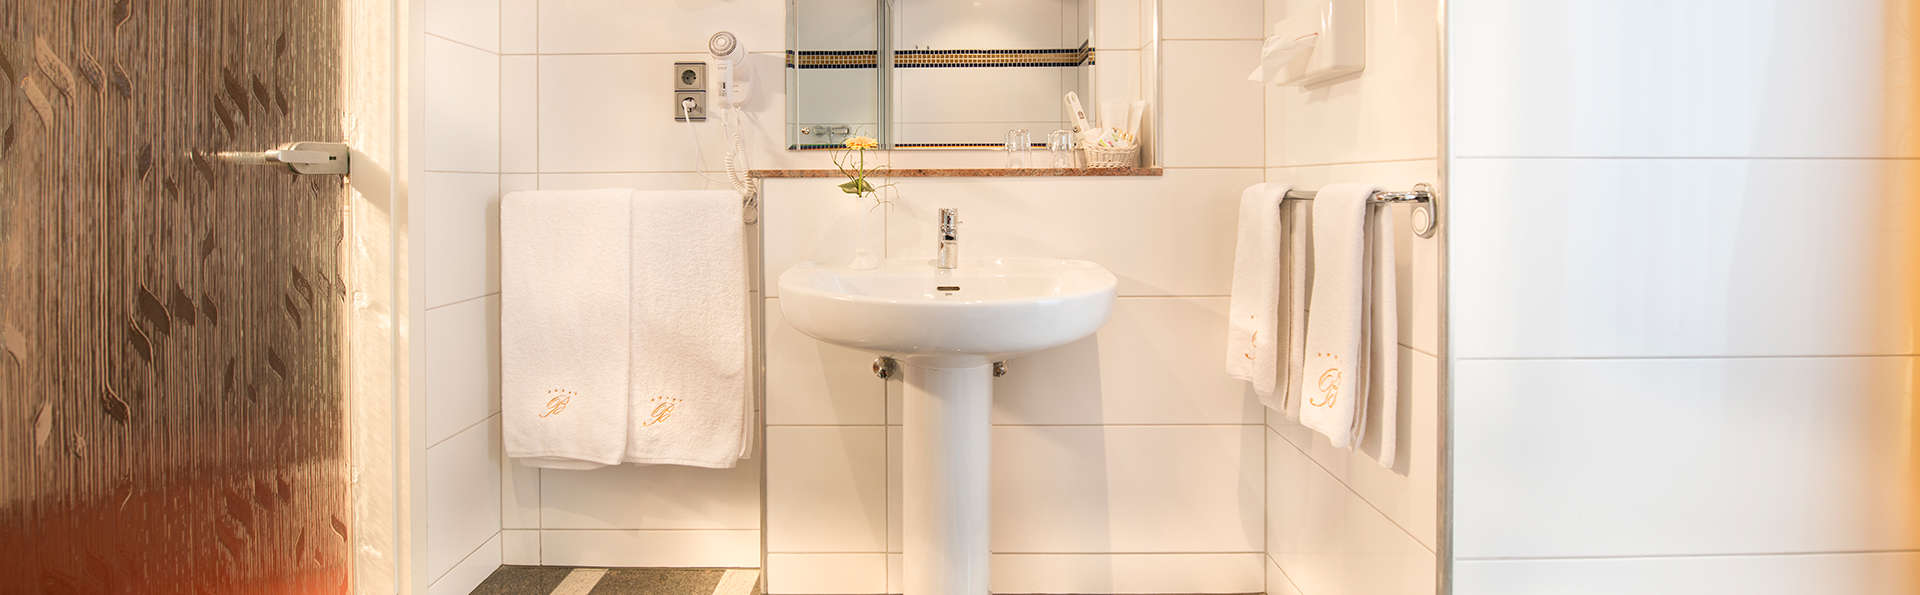 Bellevue Rheinhotel - EDIT_bathroom.jpg